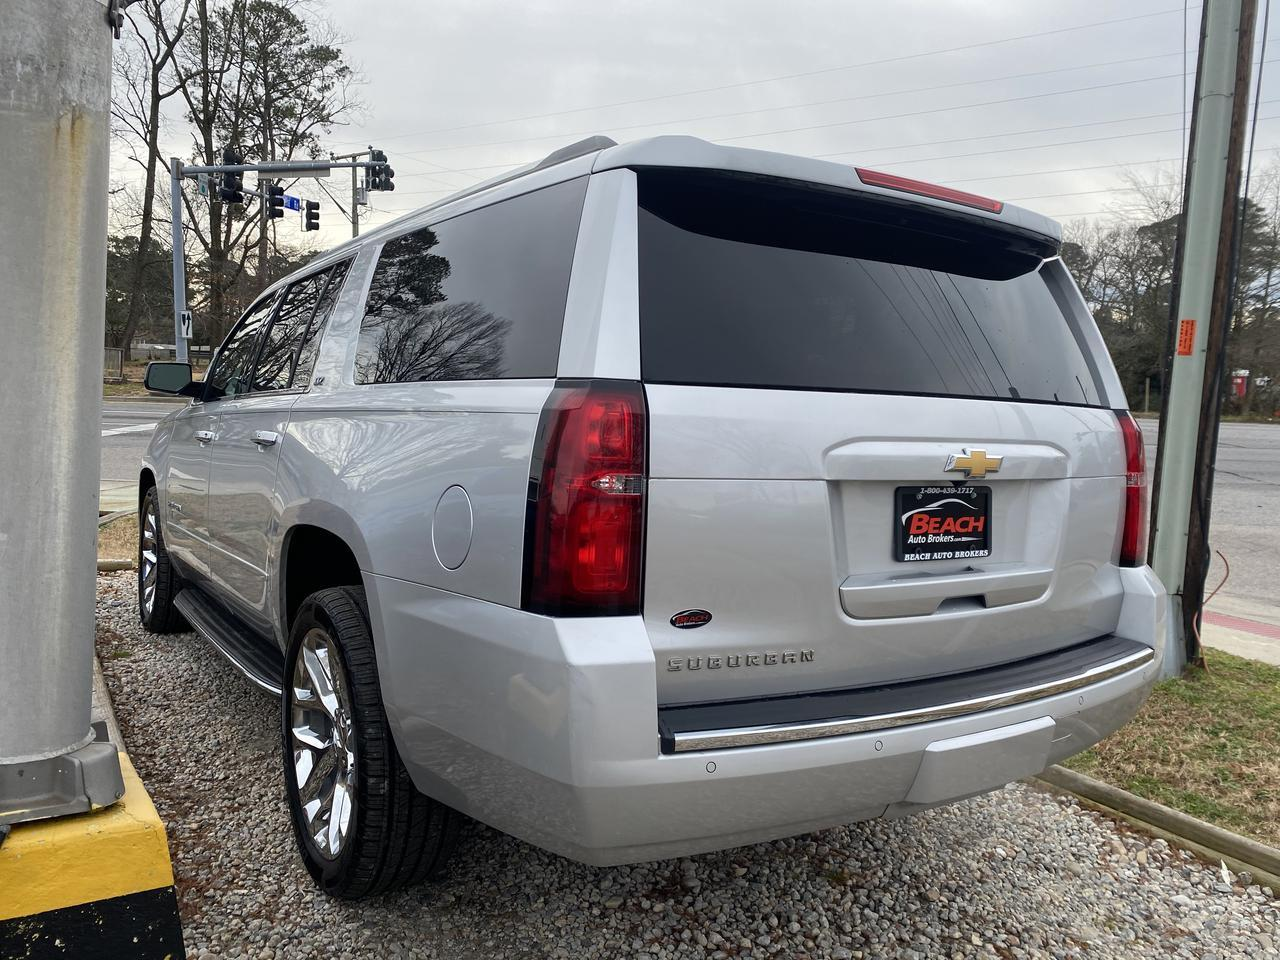 2016 CHEVROLET SUBURBAN LTZ 4X4, WARRANTY, LEATHER, NAV, SUNROOF, HEATED/COOLED SEATS, 3RD ROW, DVD PLAYER, 1 OWNER, CLEAN! Norfolk VA